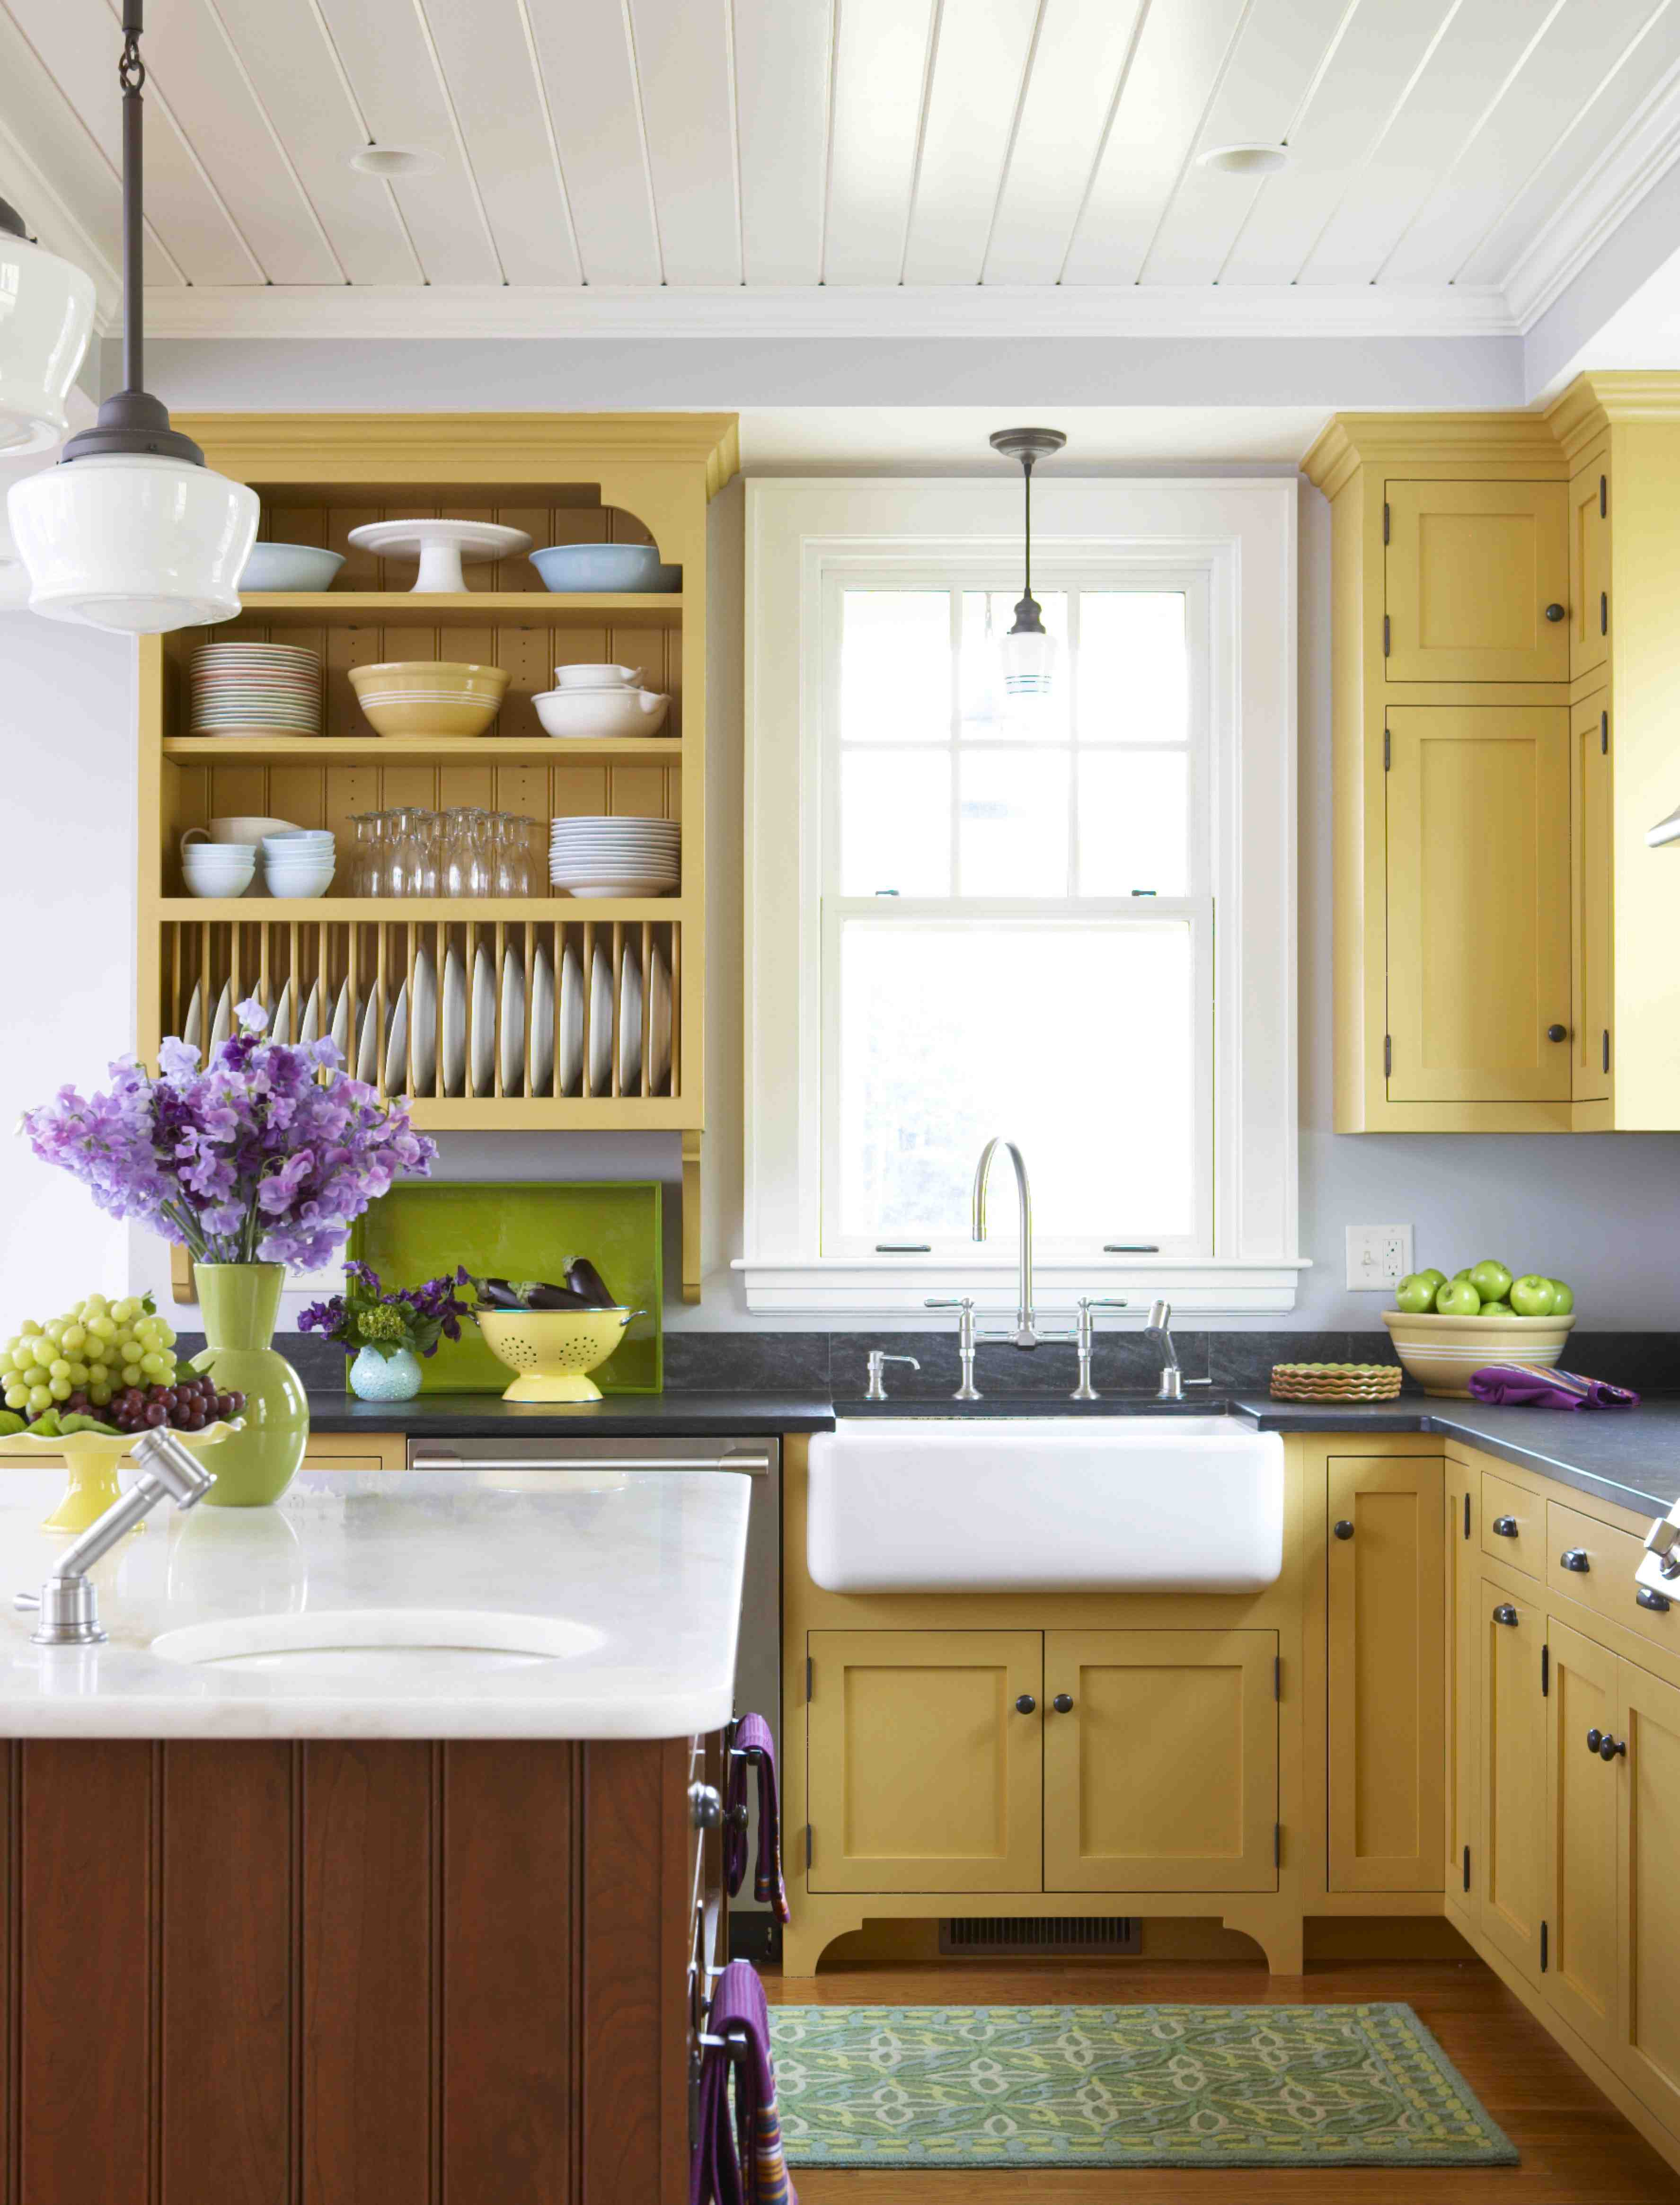 My Favorite Kitchens of 2010  stacystyles blog